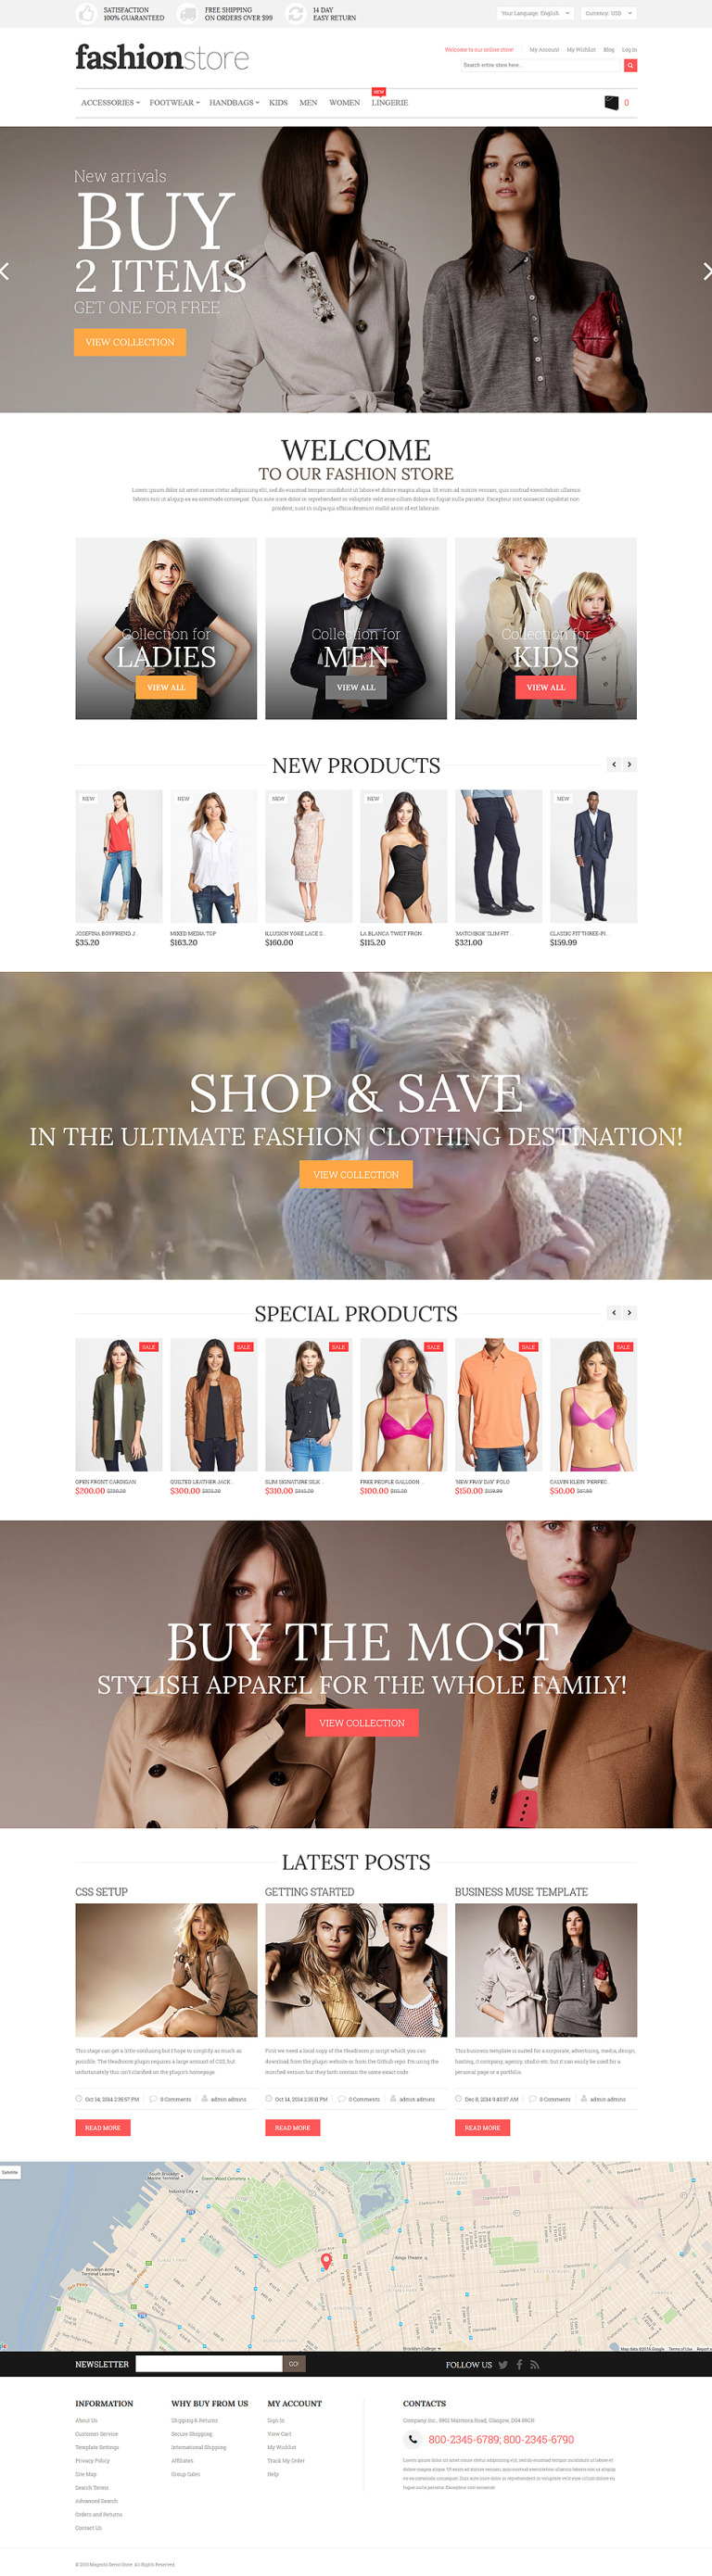 Fashion Store Magento Theme New Screenshots BIG